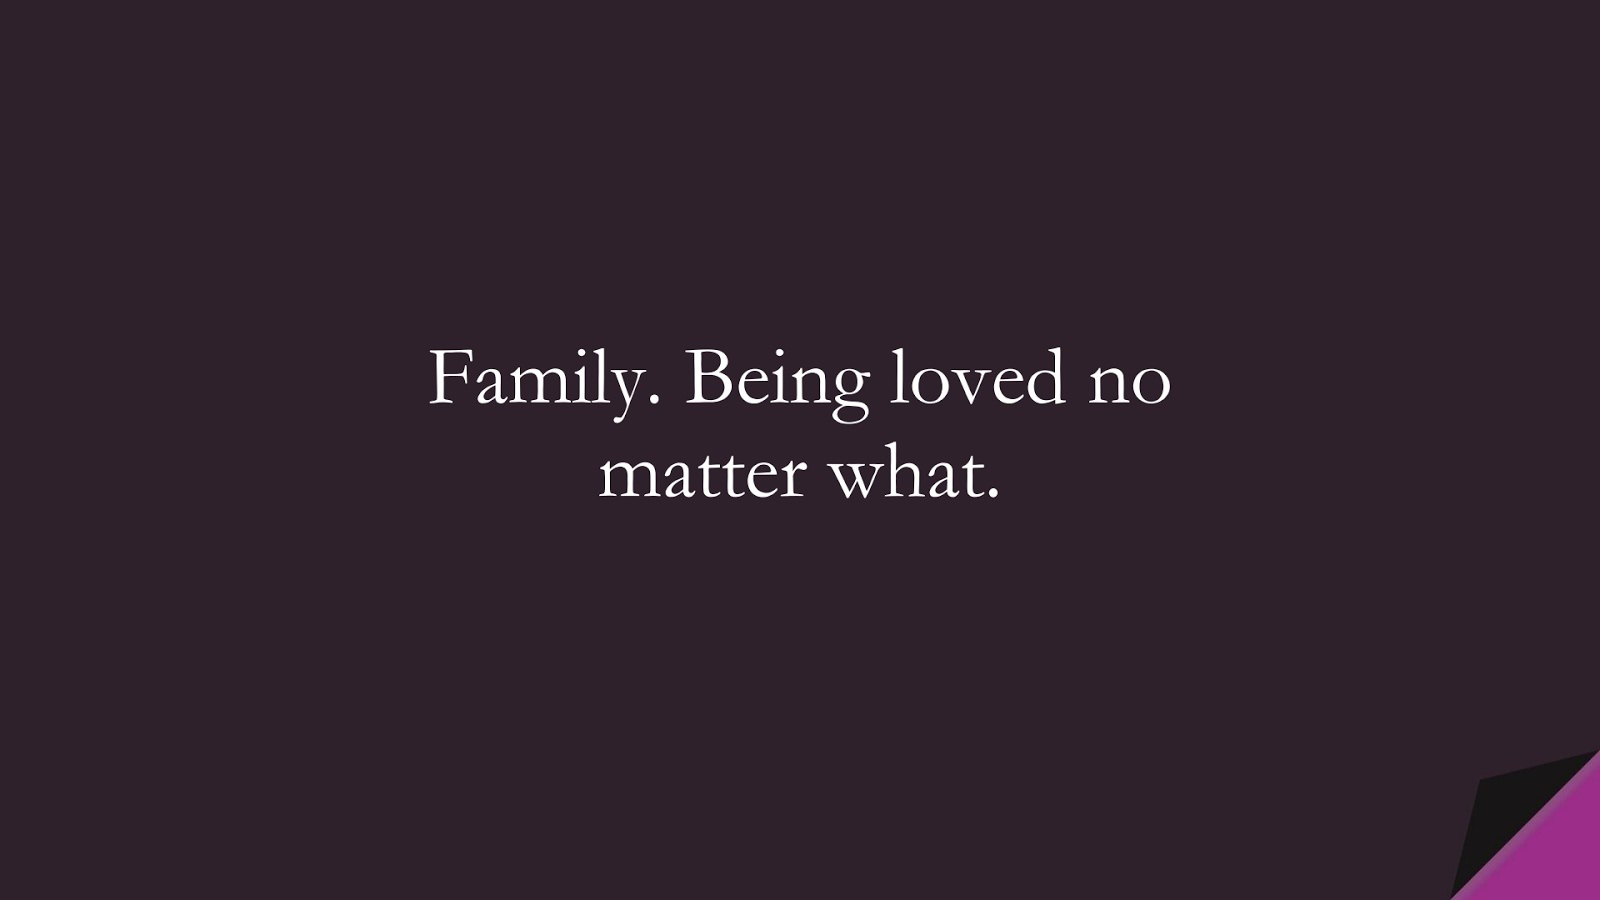 Family. Being loved no matter what.FALSE